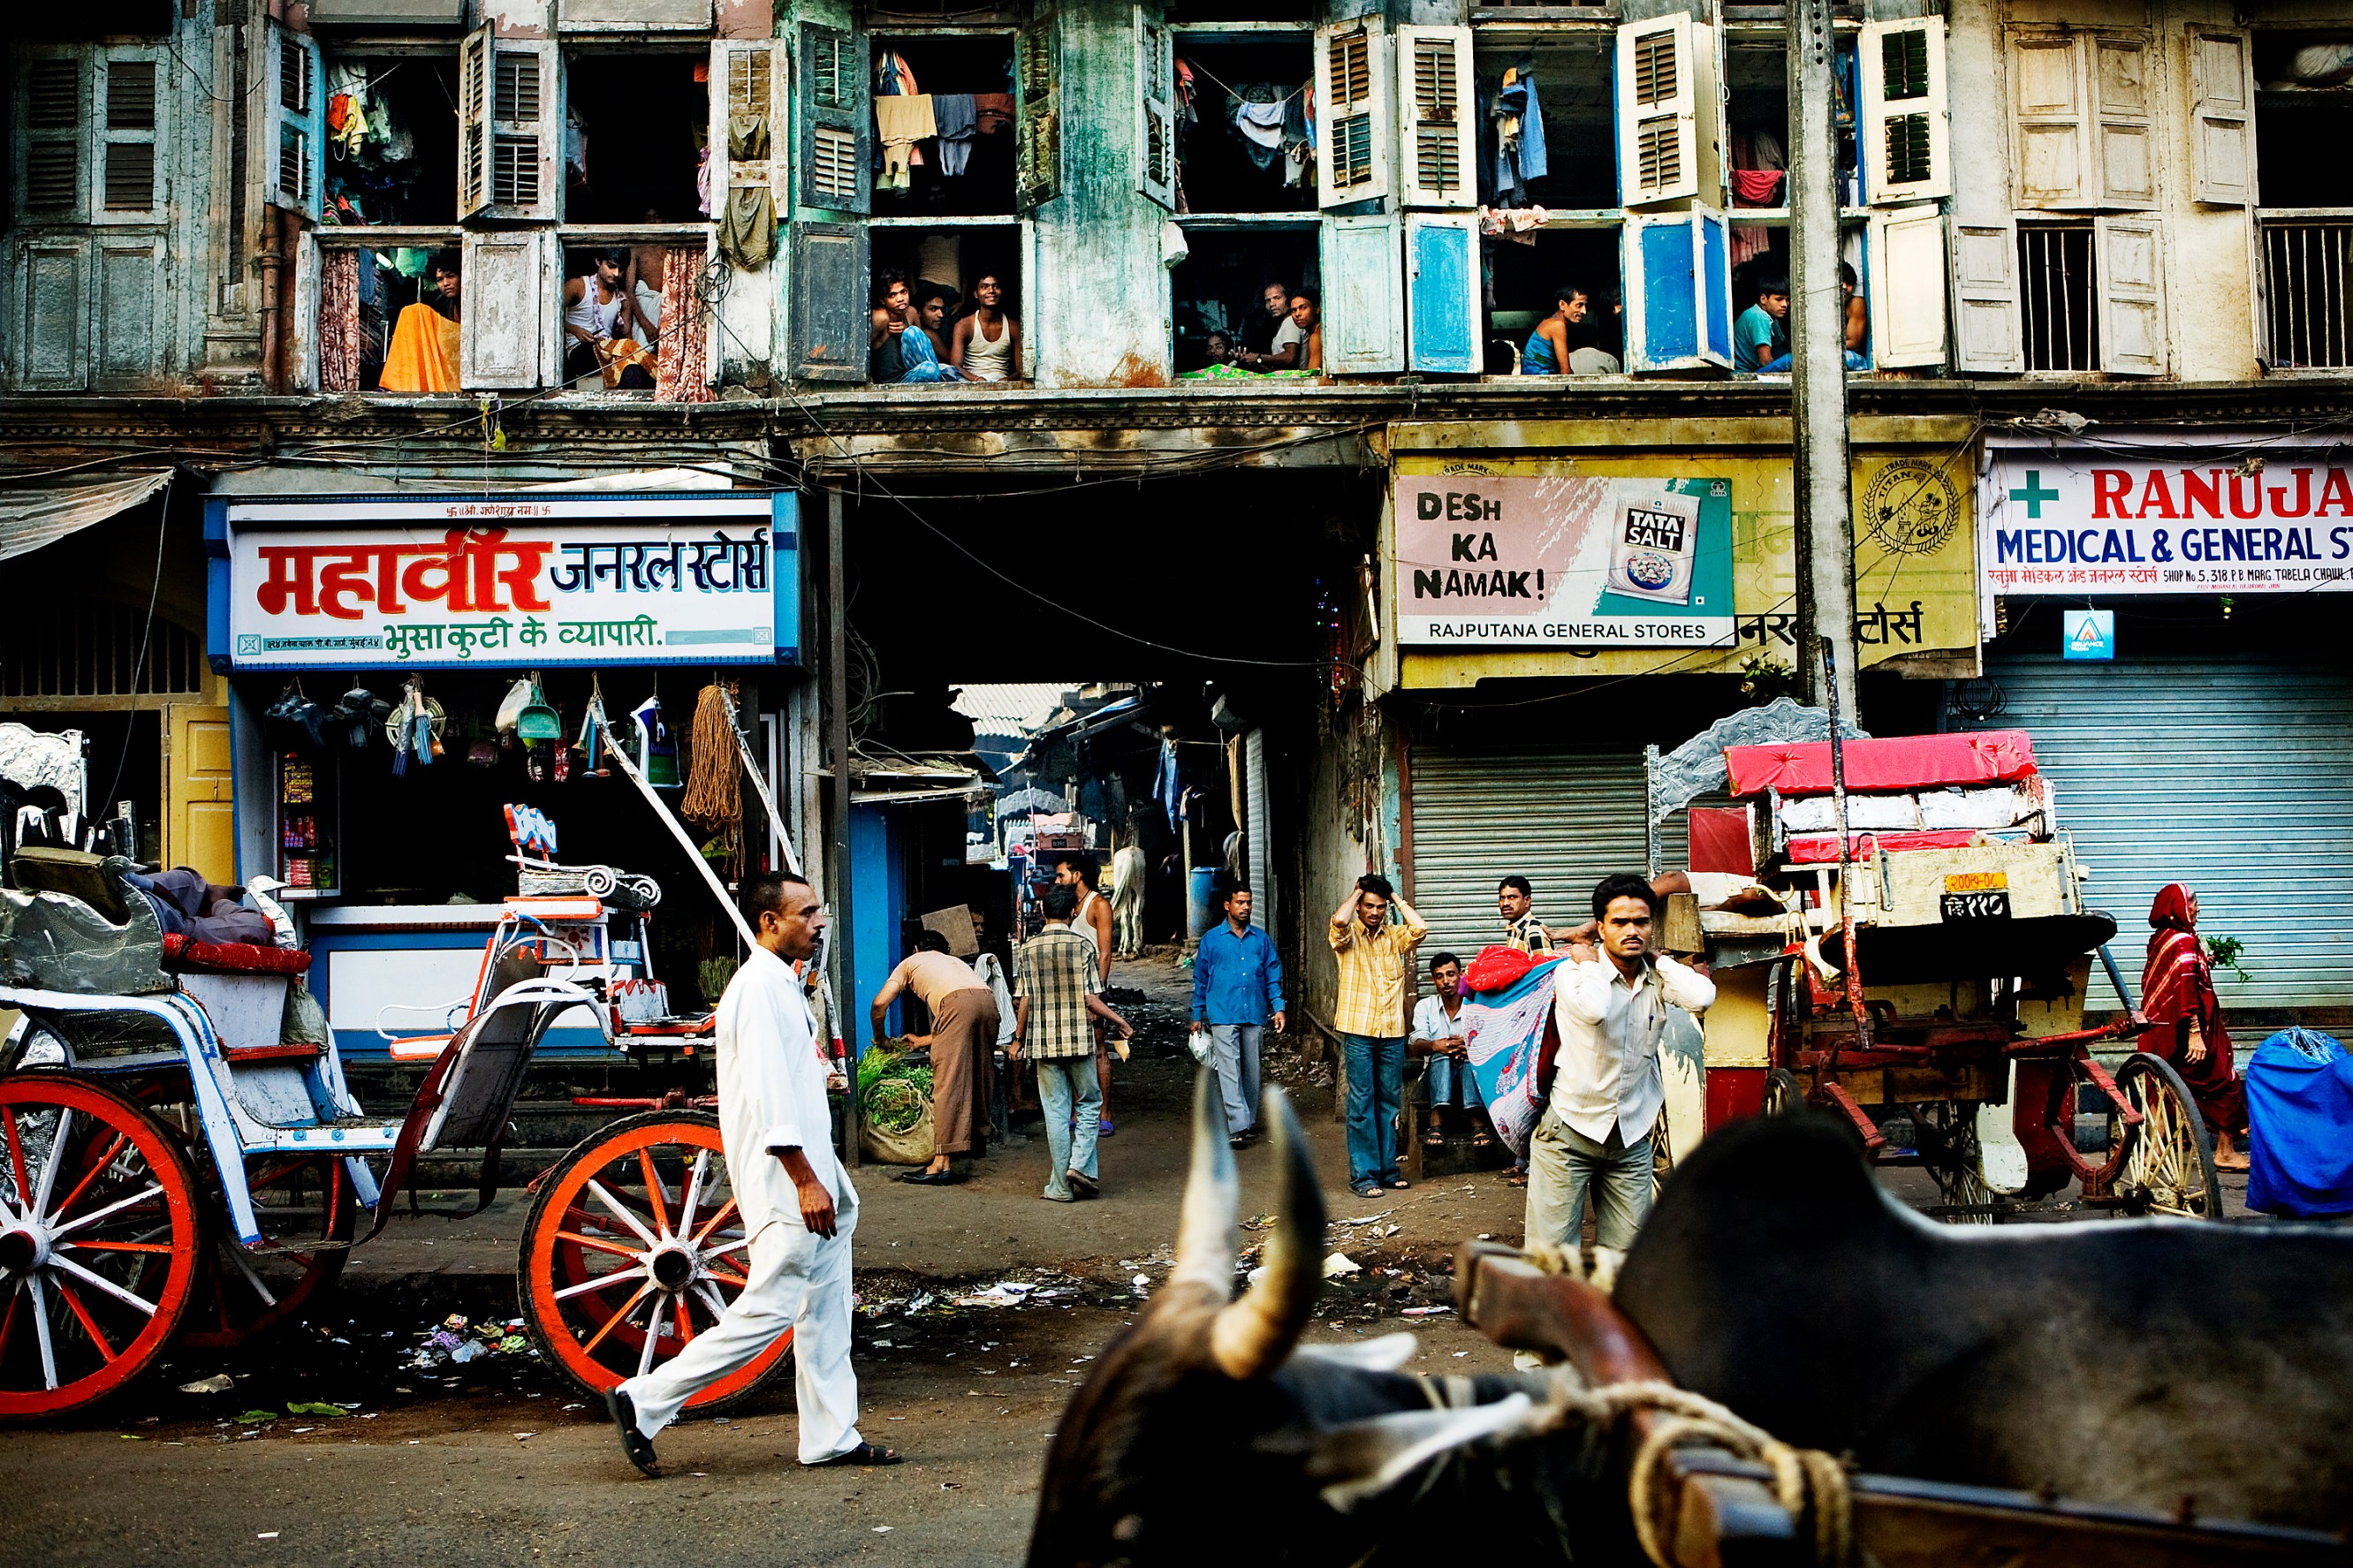 Despite the explosion of consumerism and capitalism in India's booming cities, more than half of all Indians still live in rural areas. Globalisation has brought tremendous changes in India and, for some, tremendous rewards.